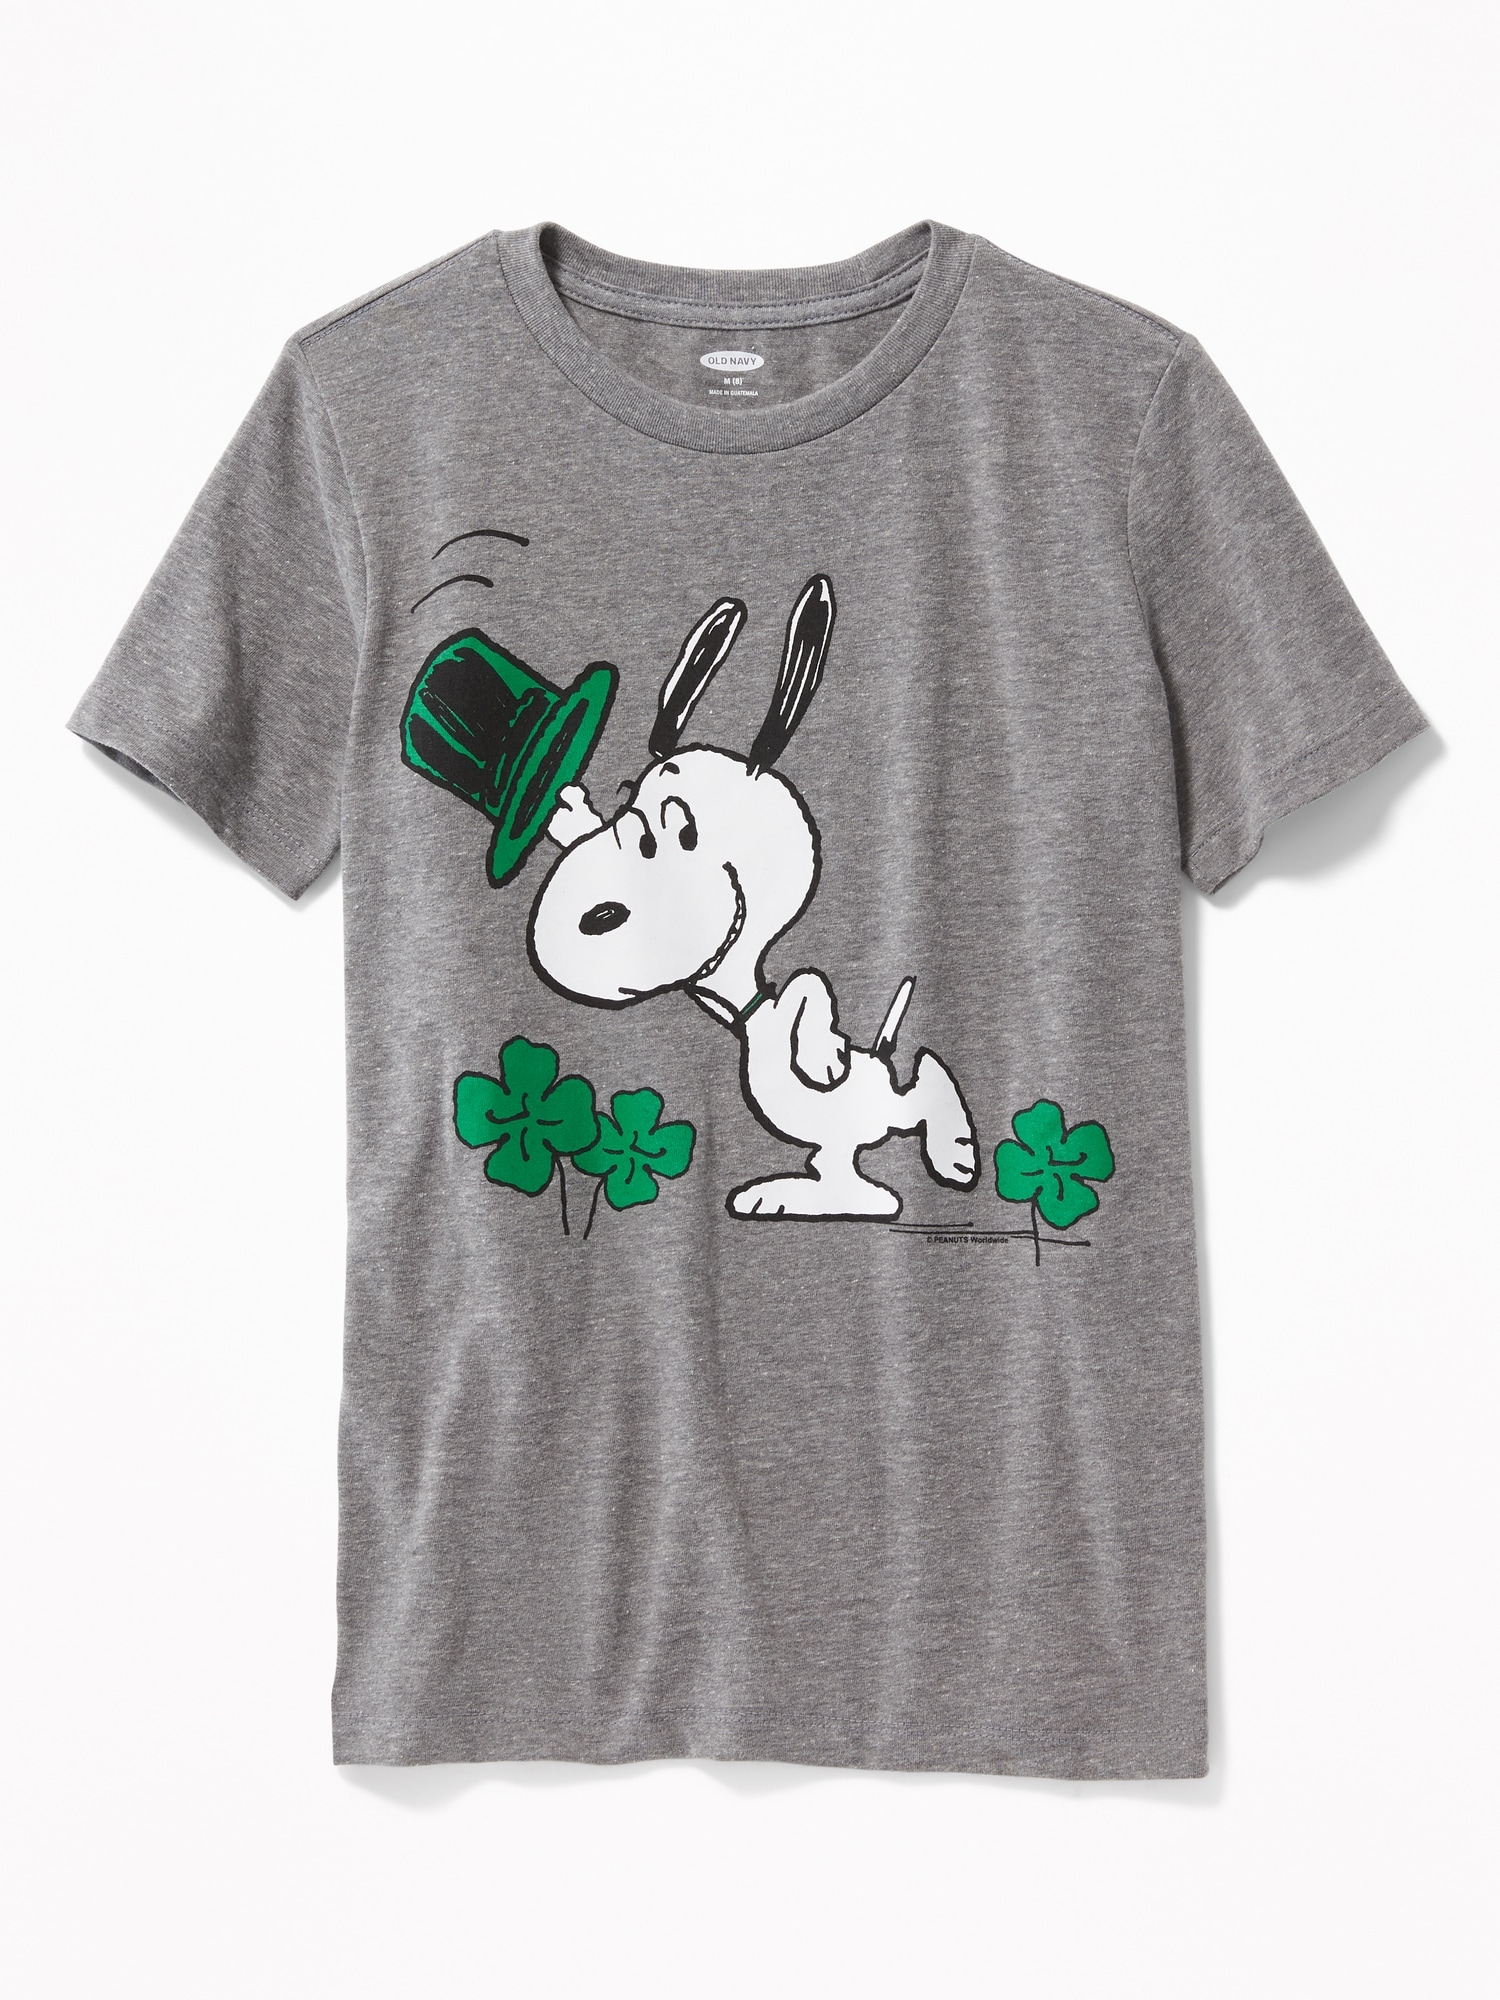 c01037dd1 Peanuts® Snoopy St. Patrick's Day Tee for Boys | Old Navy